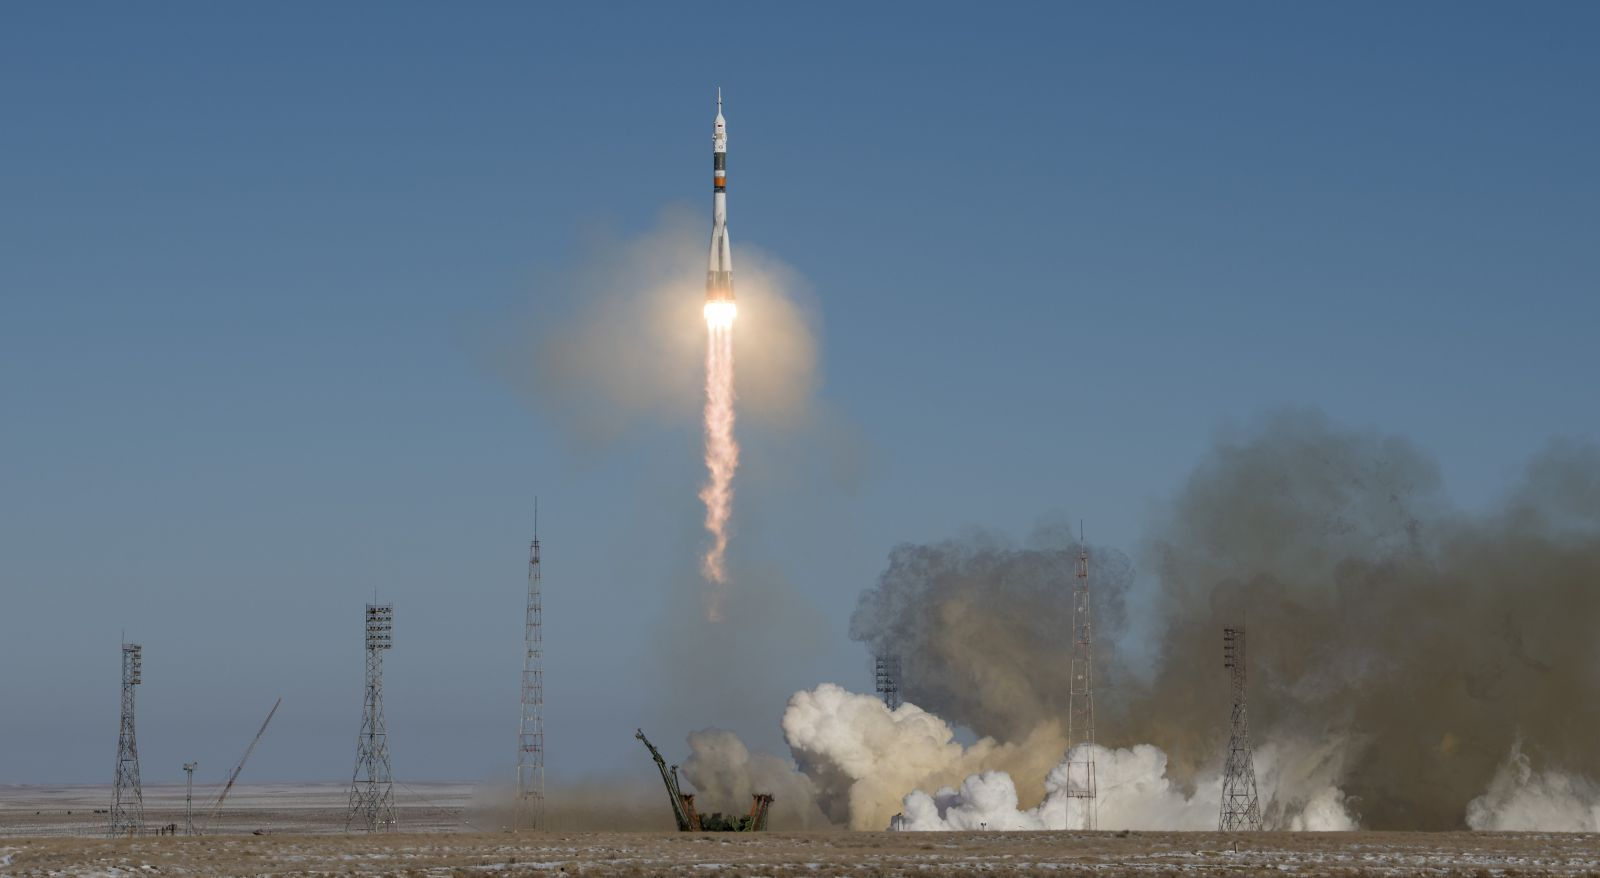 MA astronaut launches into space for first time